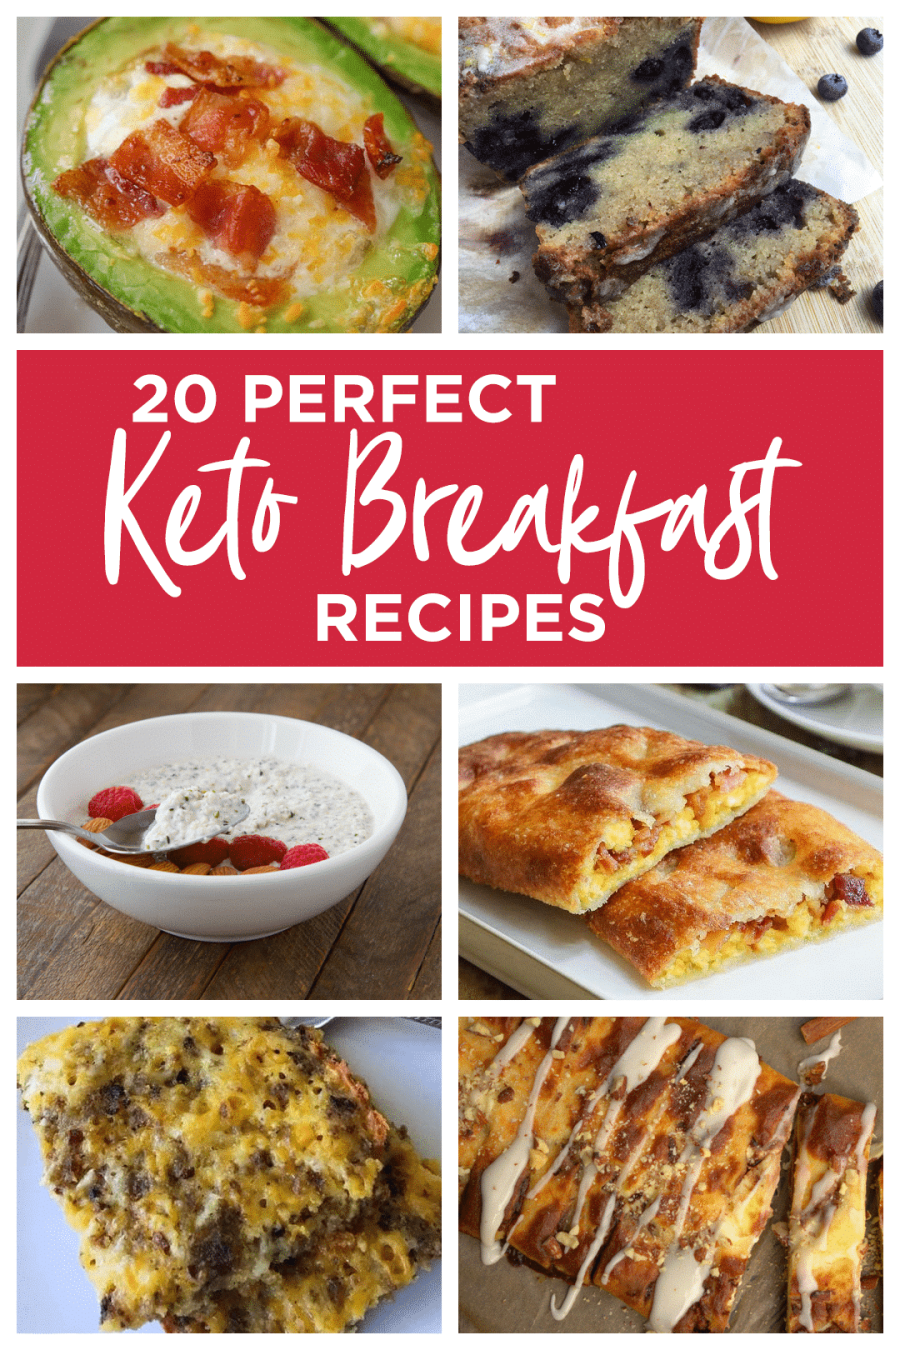 Check out our list of 20 Perfect Keto Breakfast Recipes that are sure to satisfy your cravings for breakfast! Foods like these are perfect great keto breakfast recipes!